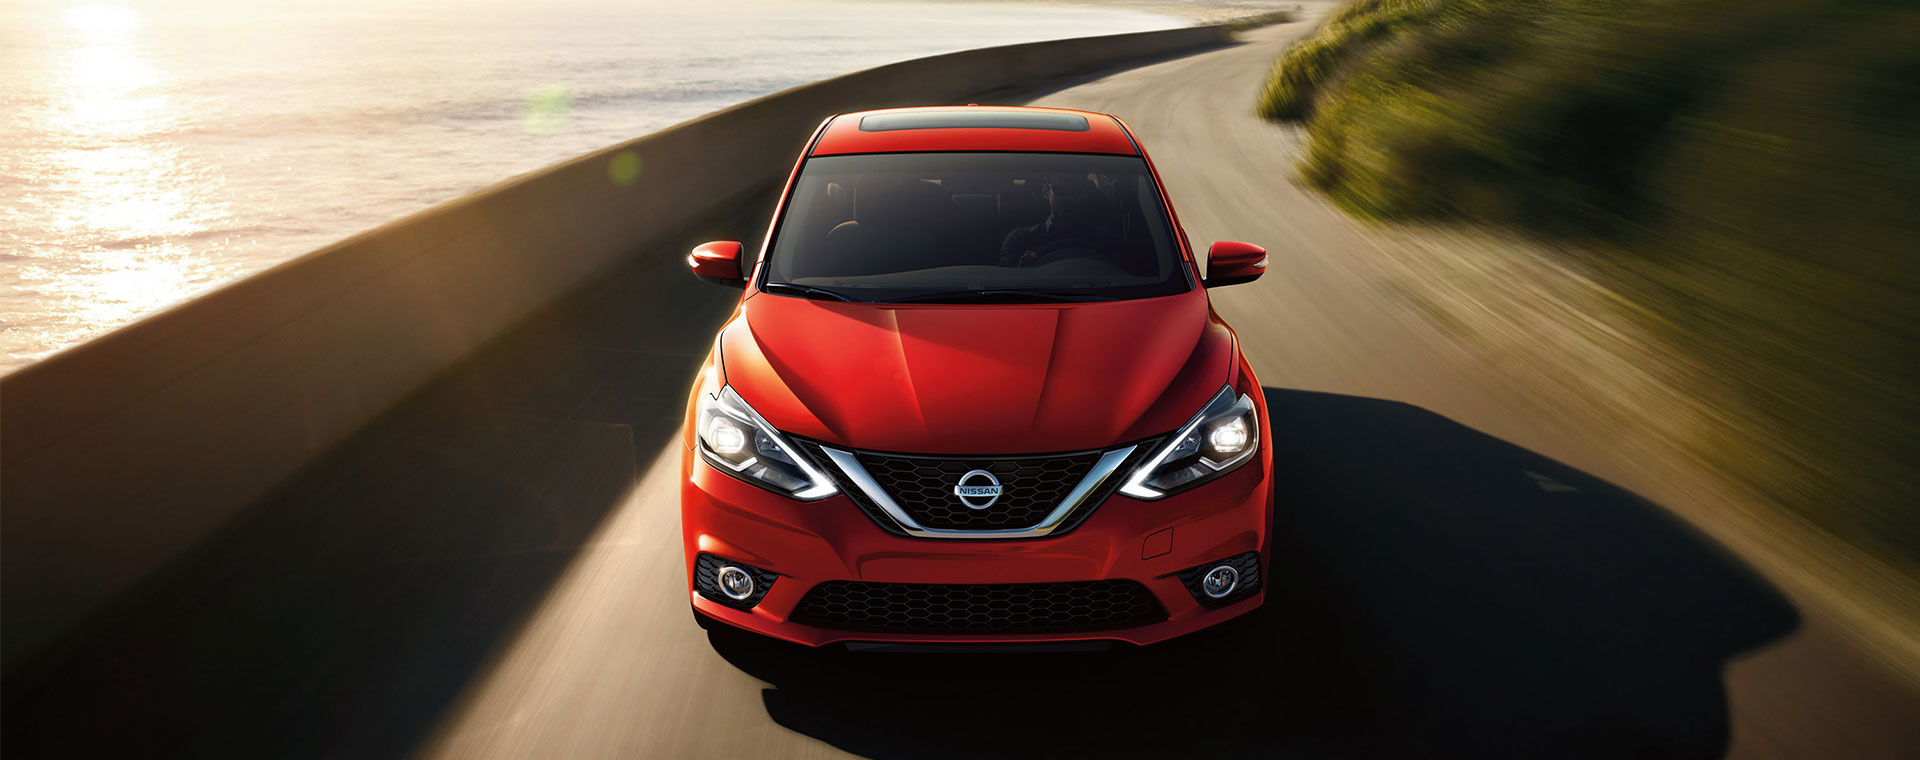 New Sentra inventory at Quirk Nissan